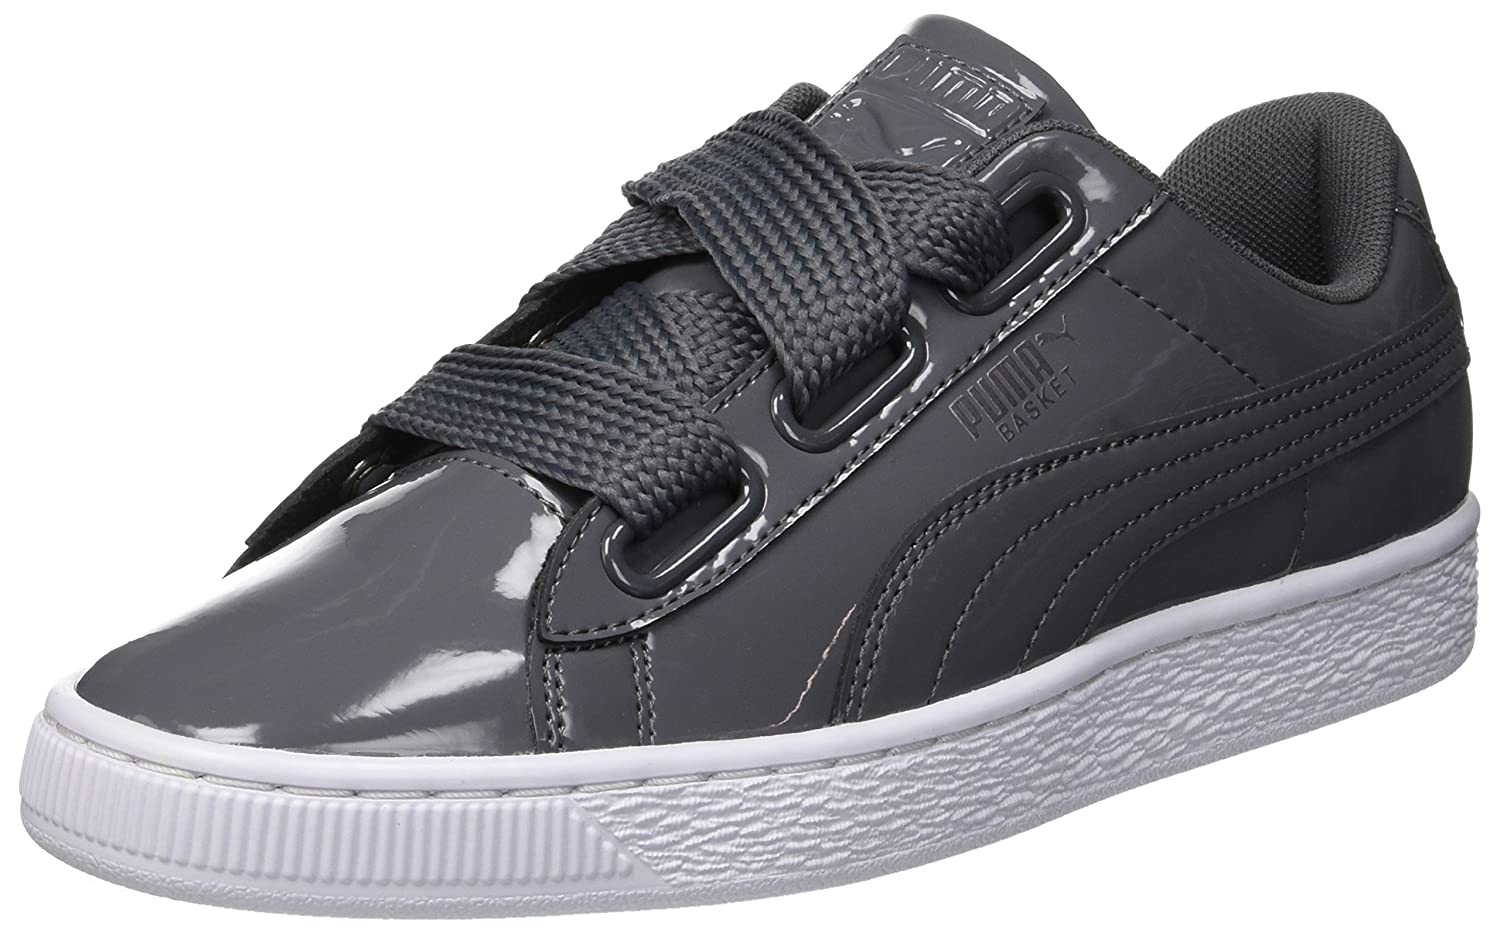 Puma Basket Heart Patent Wn s, Basses Sneakers 19999 Basses Gate-iron Femme Gris (Iron Gate-iron Gate 17) 38b4334 - robotanarchy.space